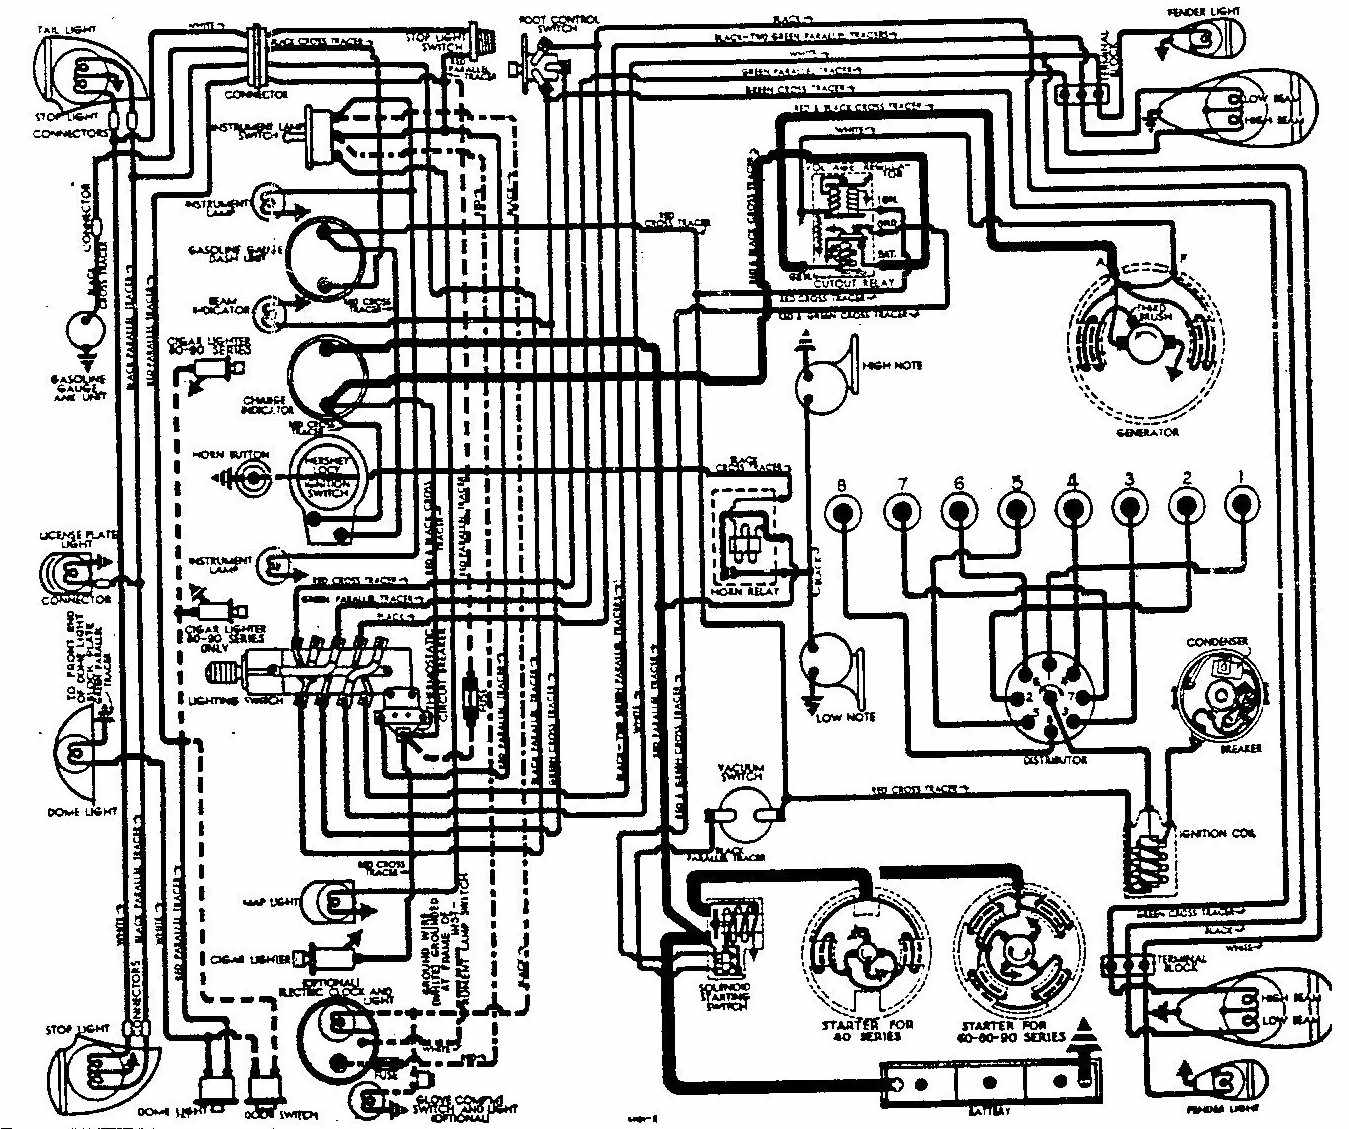 ford 5900 wiring diagram powerandground ford n tractor parts 1999 GMC Jimmy SLE wiring diagram for ford the wiring diagram ford 2000 tractor wiring diagram nodasystech wiring diagram